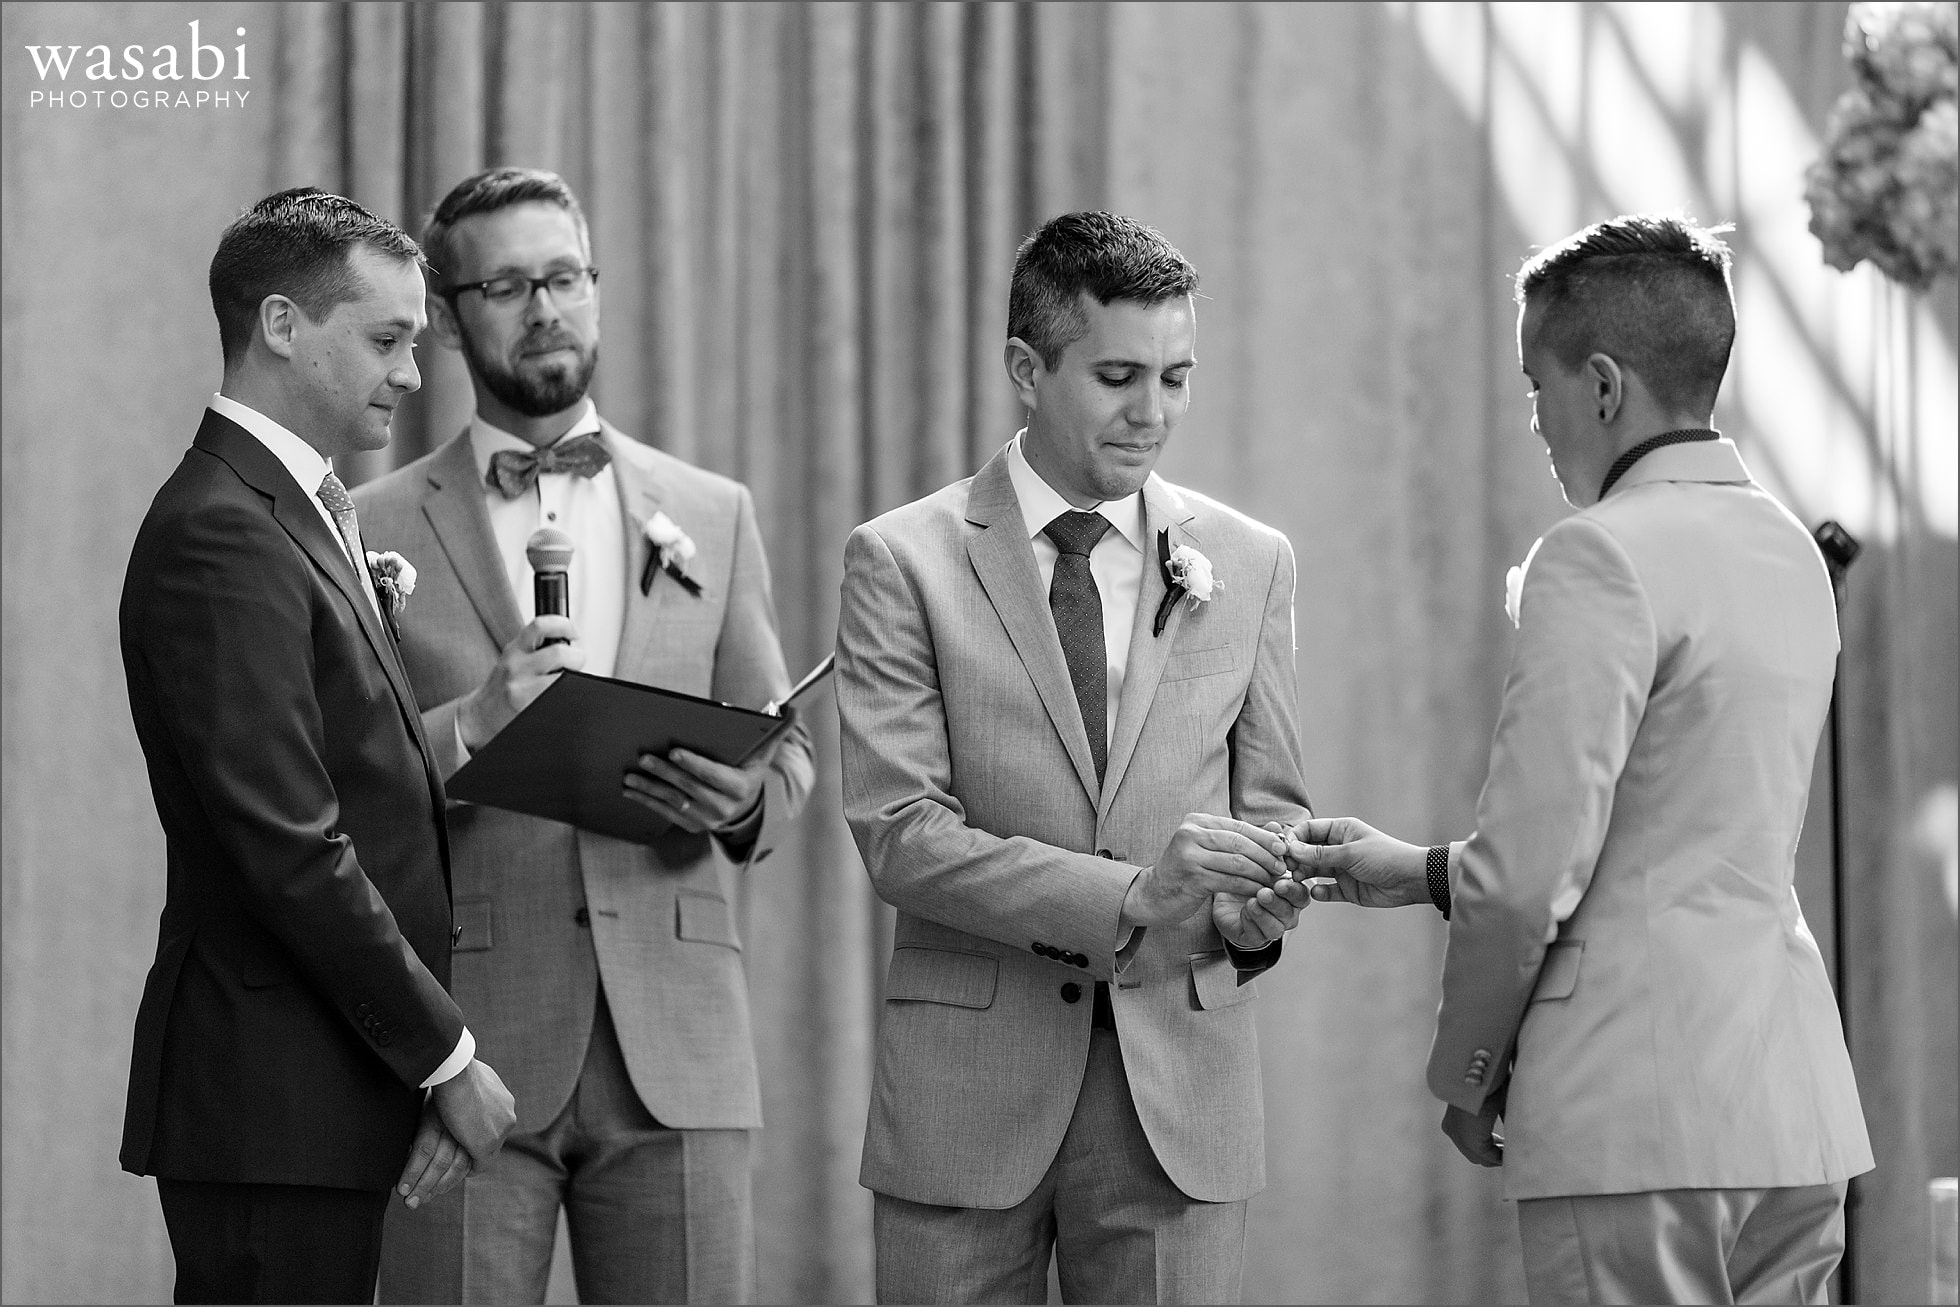 Groom gets ring from his sister during wedding ceremony